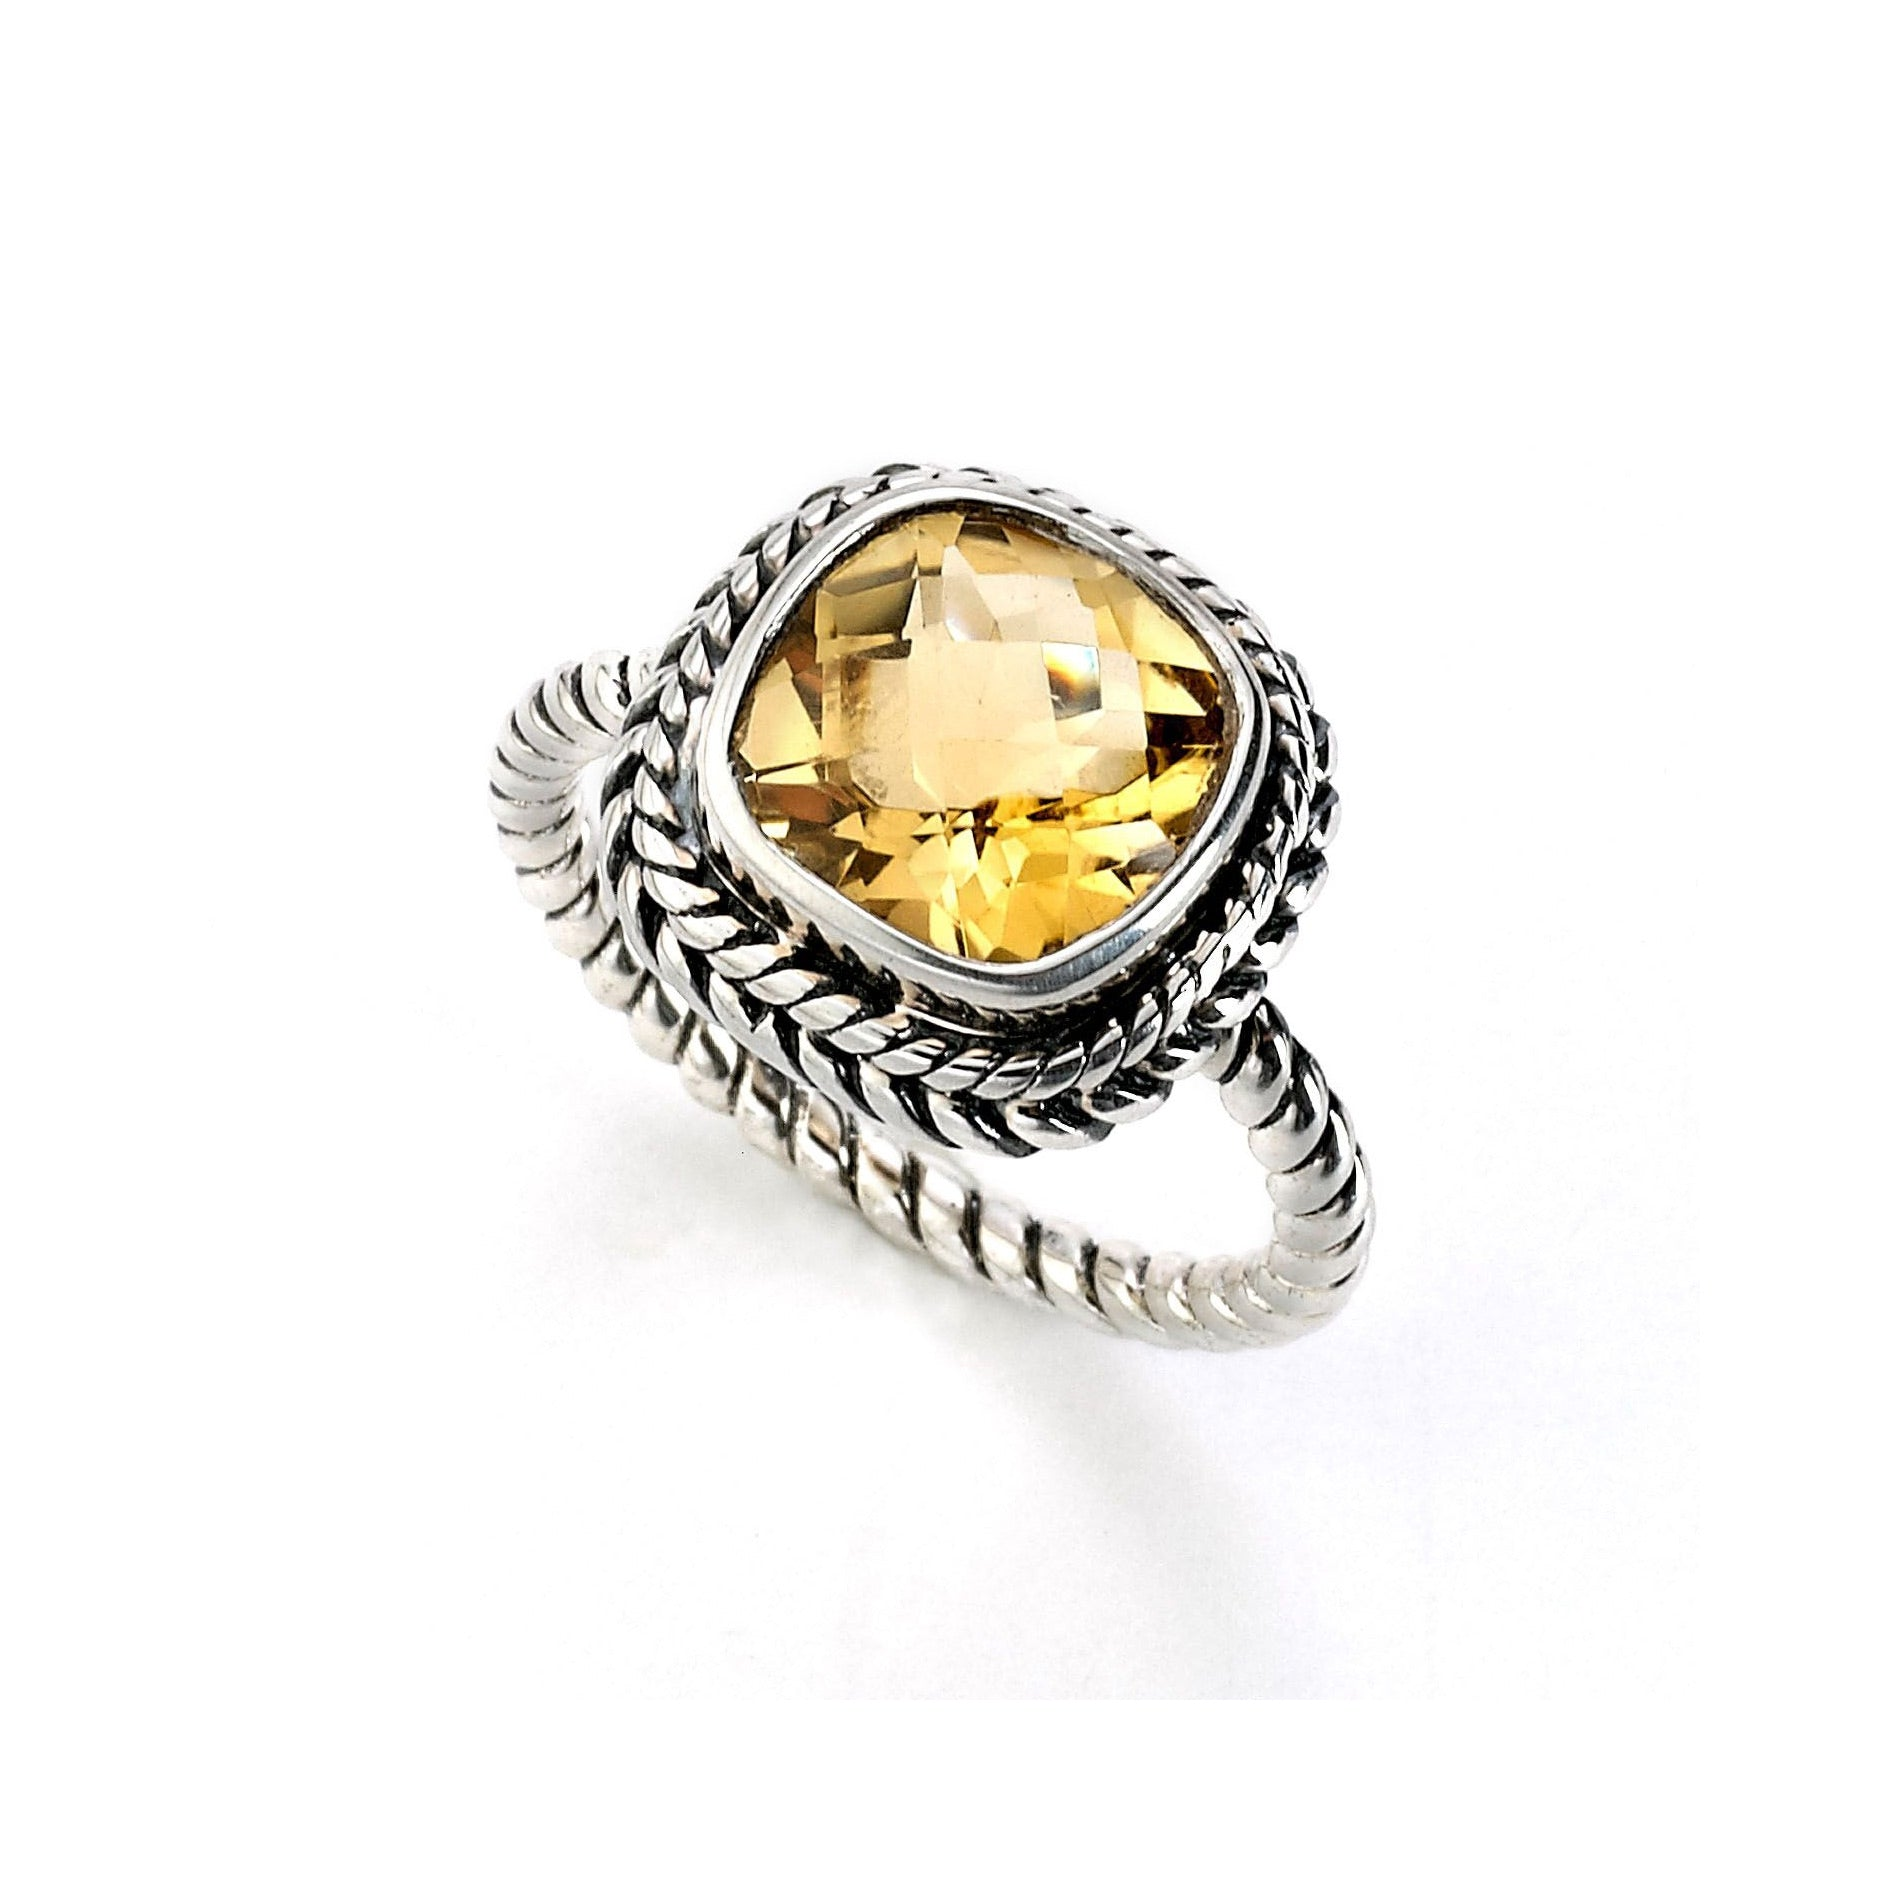 Rope Design Cushion Cut Citrine Ring, Sterling Silver